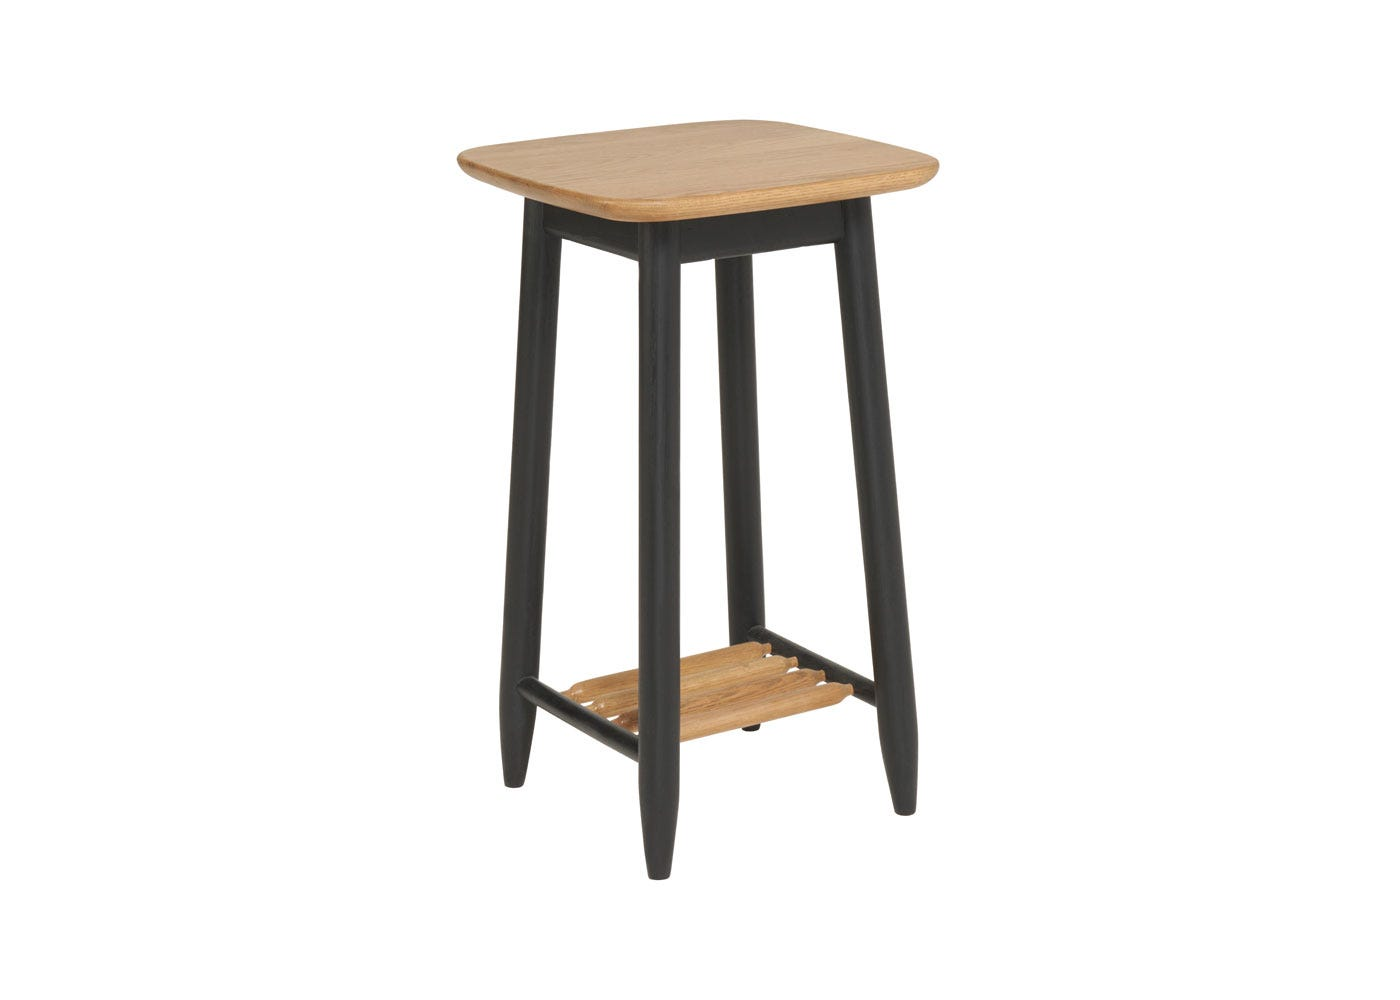 As shown: Monza compact side table.